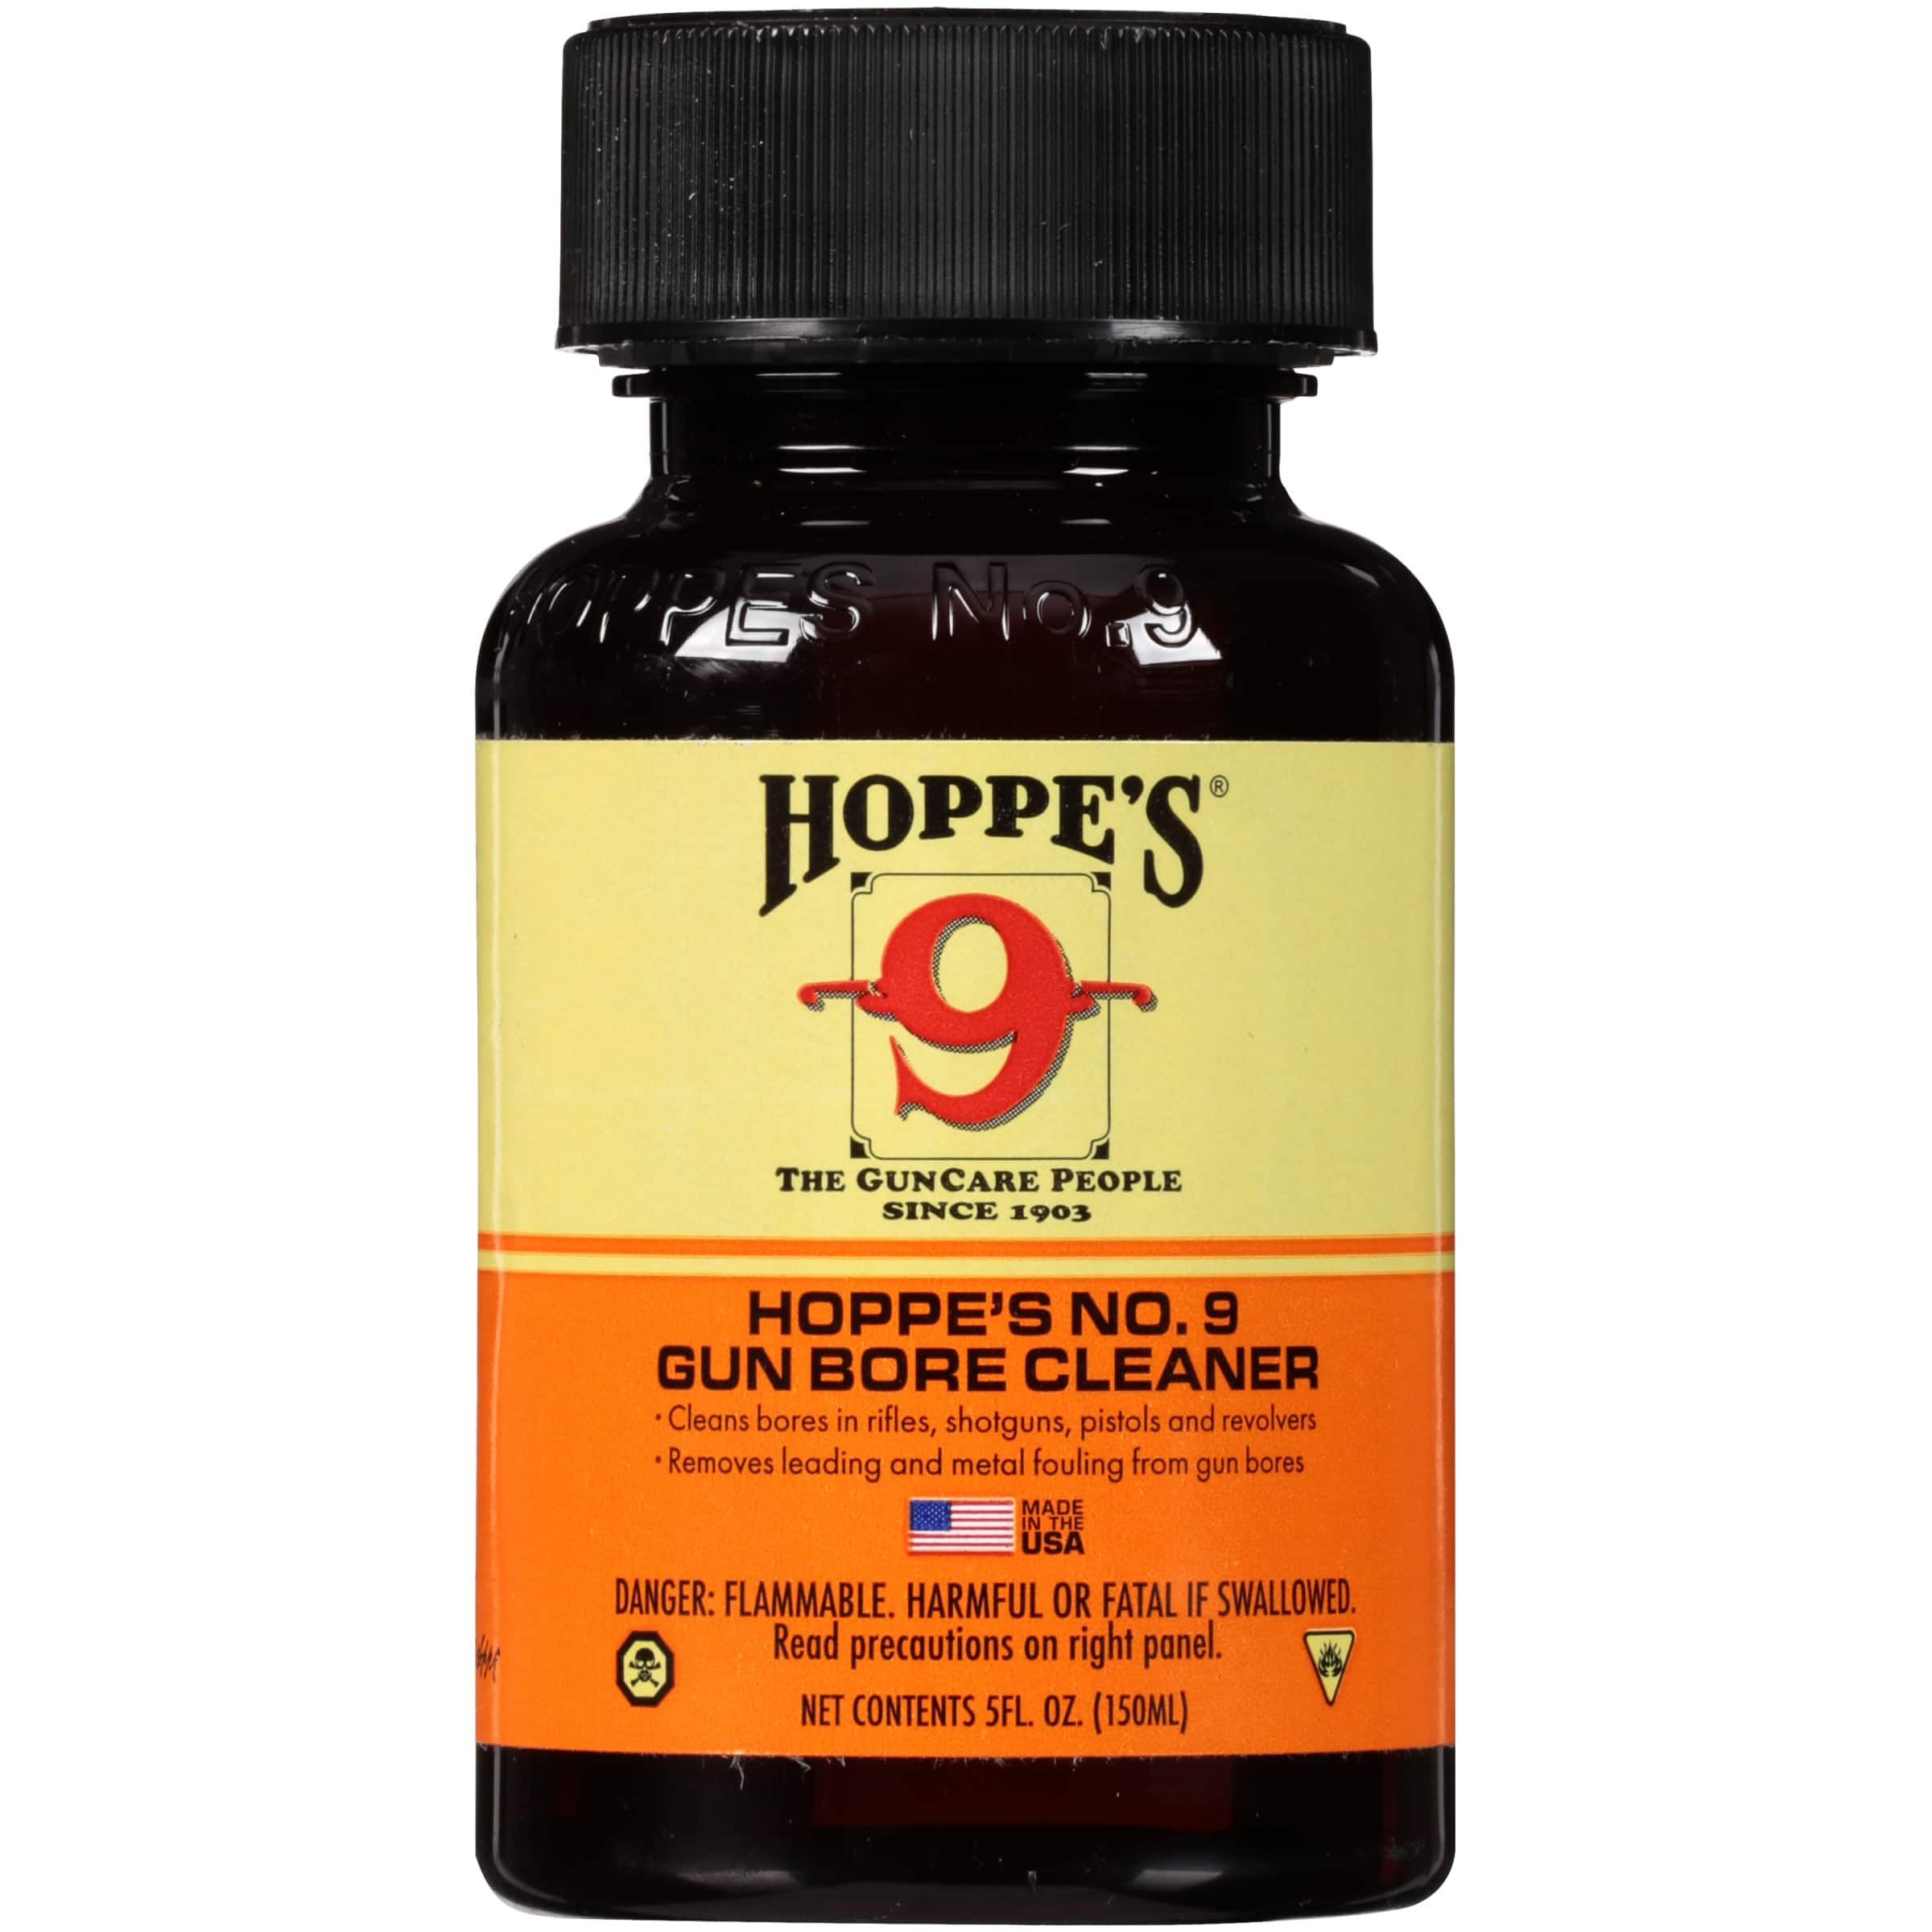 Hoppe's No. 9 Bore Cleaner $3.87